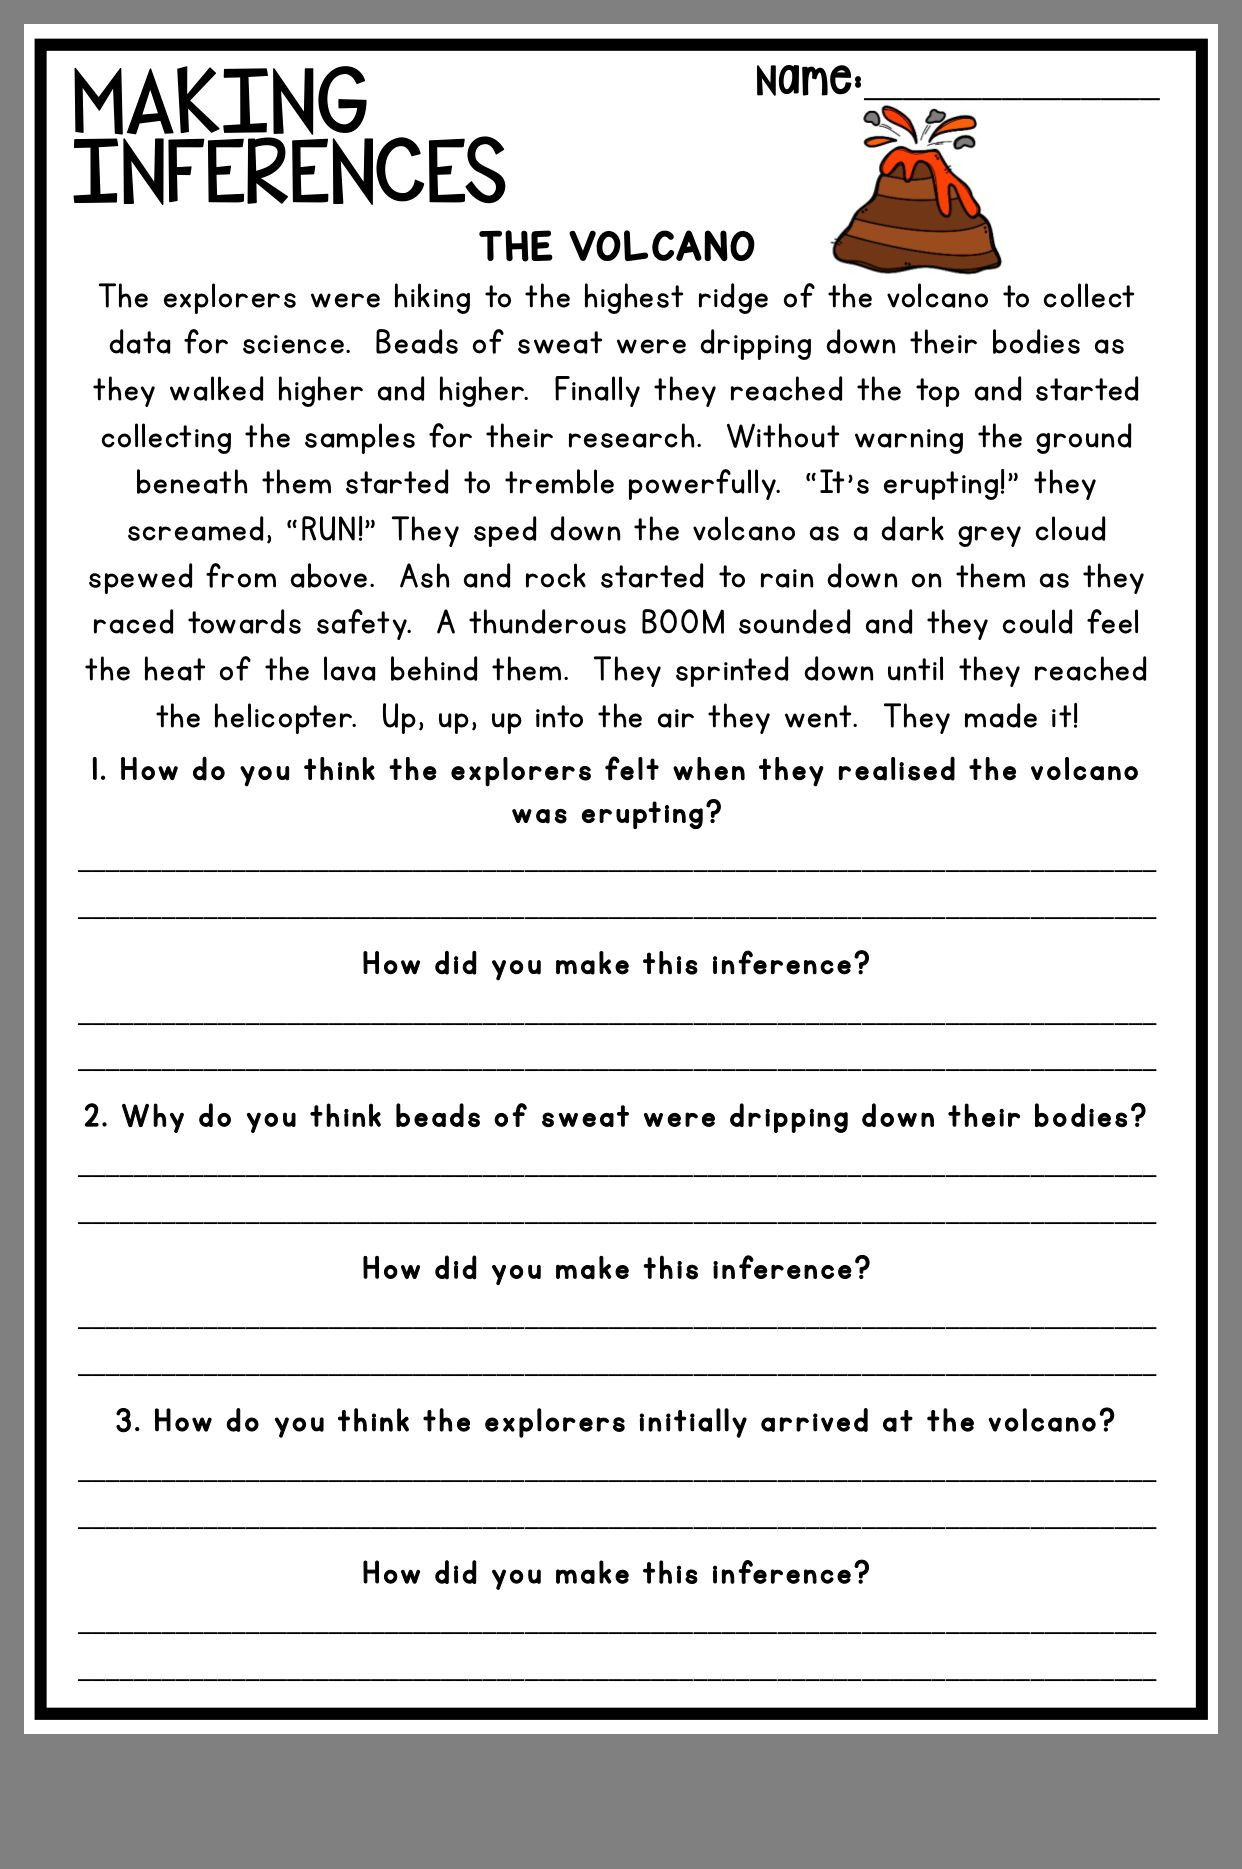 Drawing Conclusions Worksheets 5th Grade Pin by Melissa Gragg On 5th Grade Ela with Images